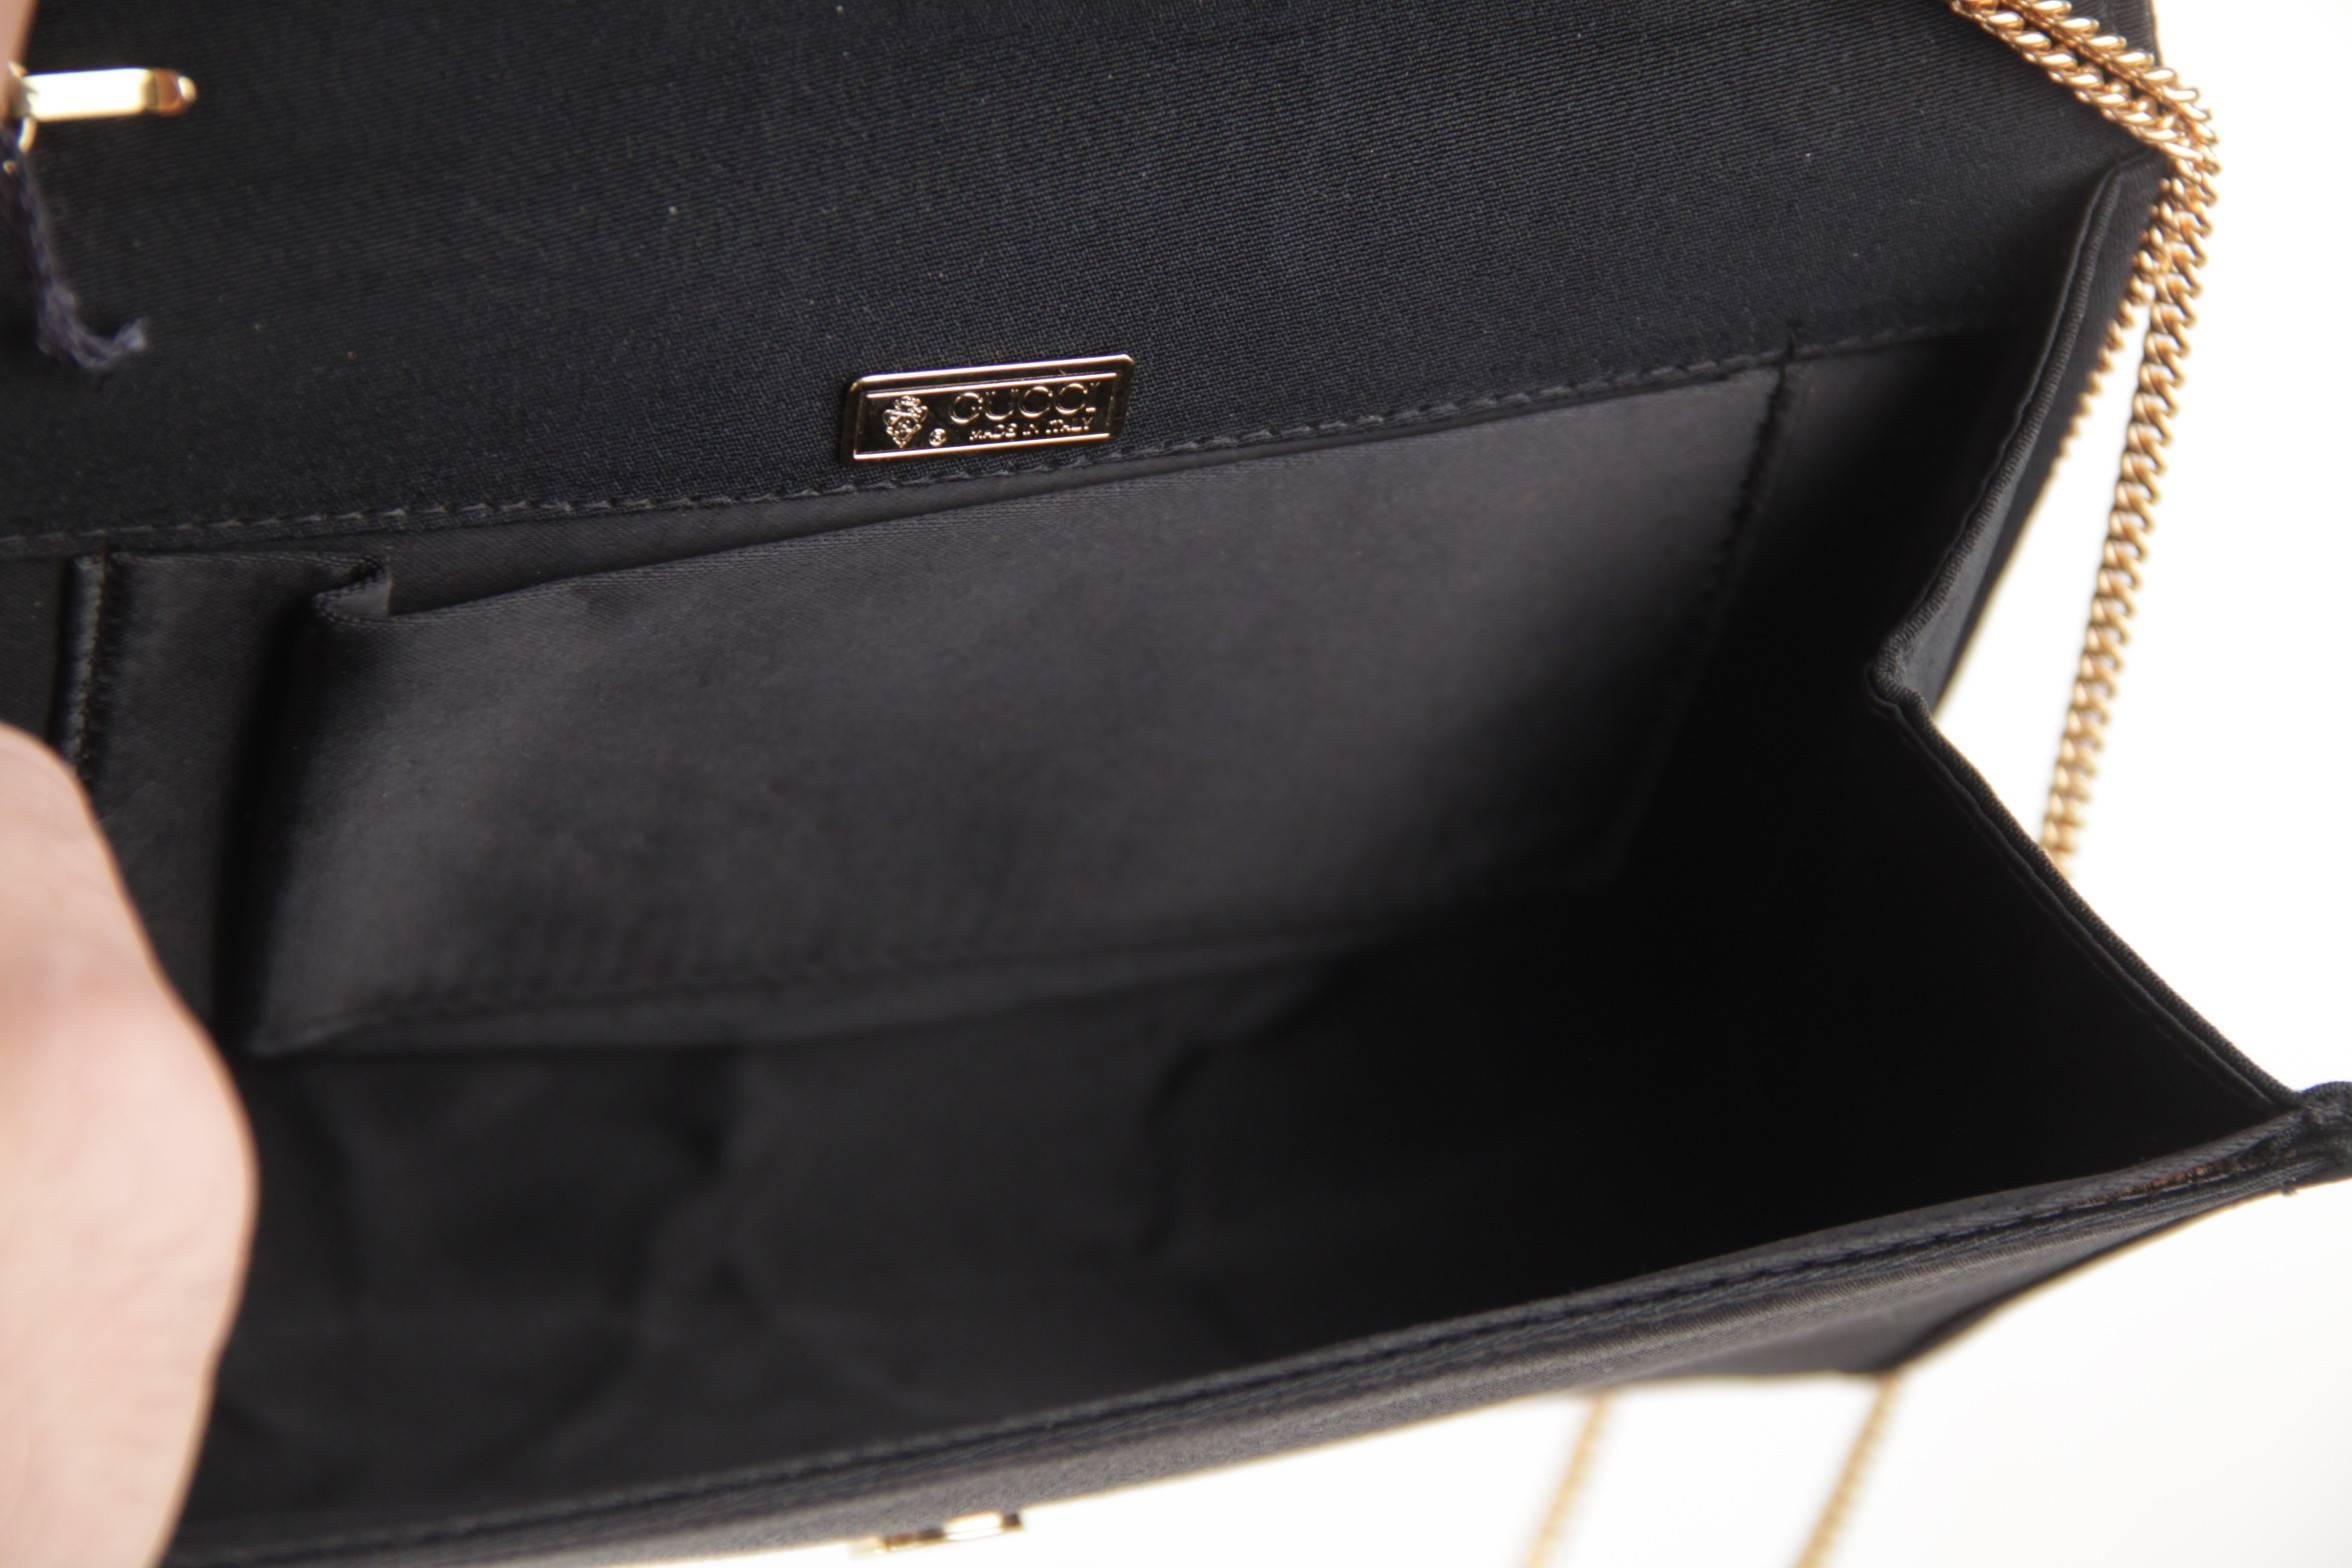 ed8fae6ae19 GUCCI Italian VINTAGE Black Fabric CLUTCH Handbag PURSE Evening Bag w   Chain at 1stdibs